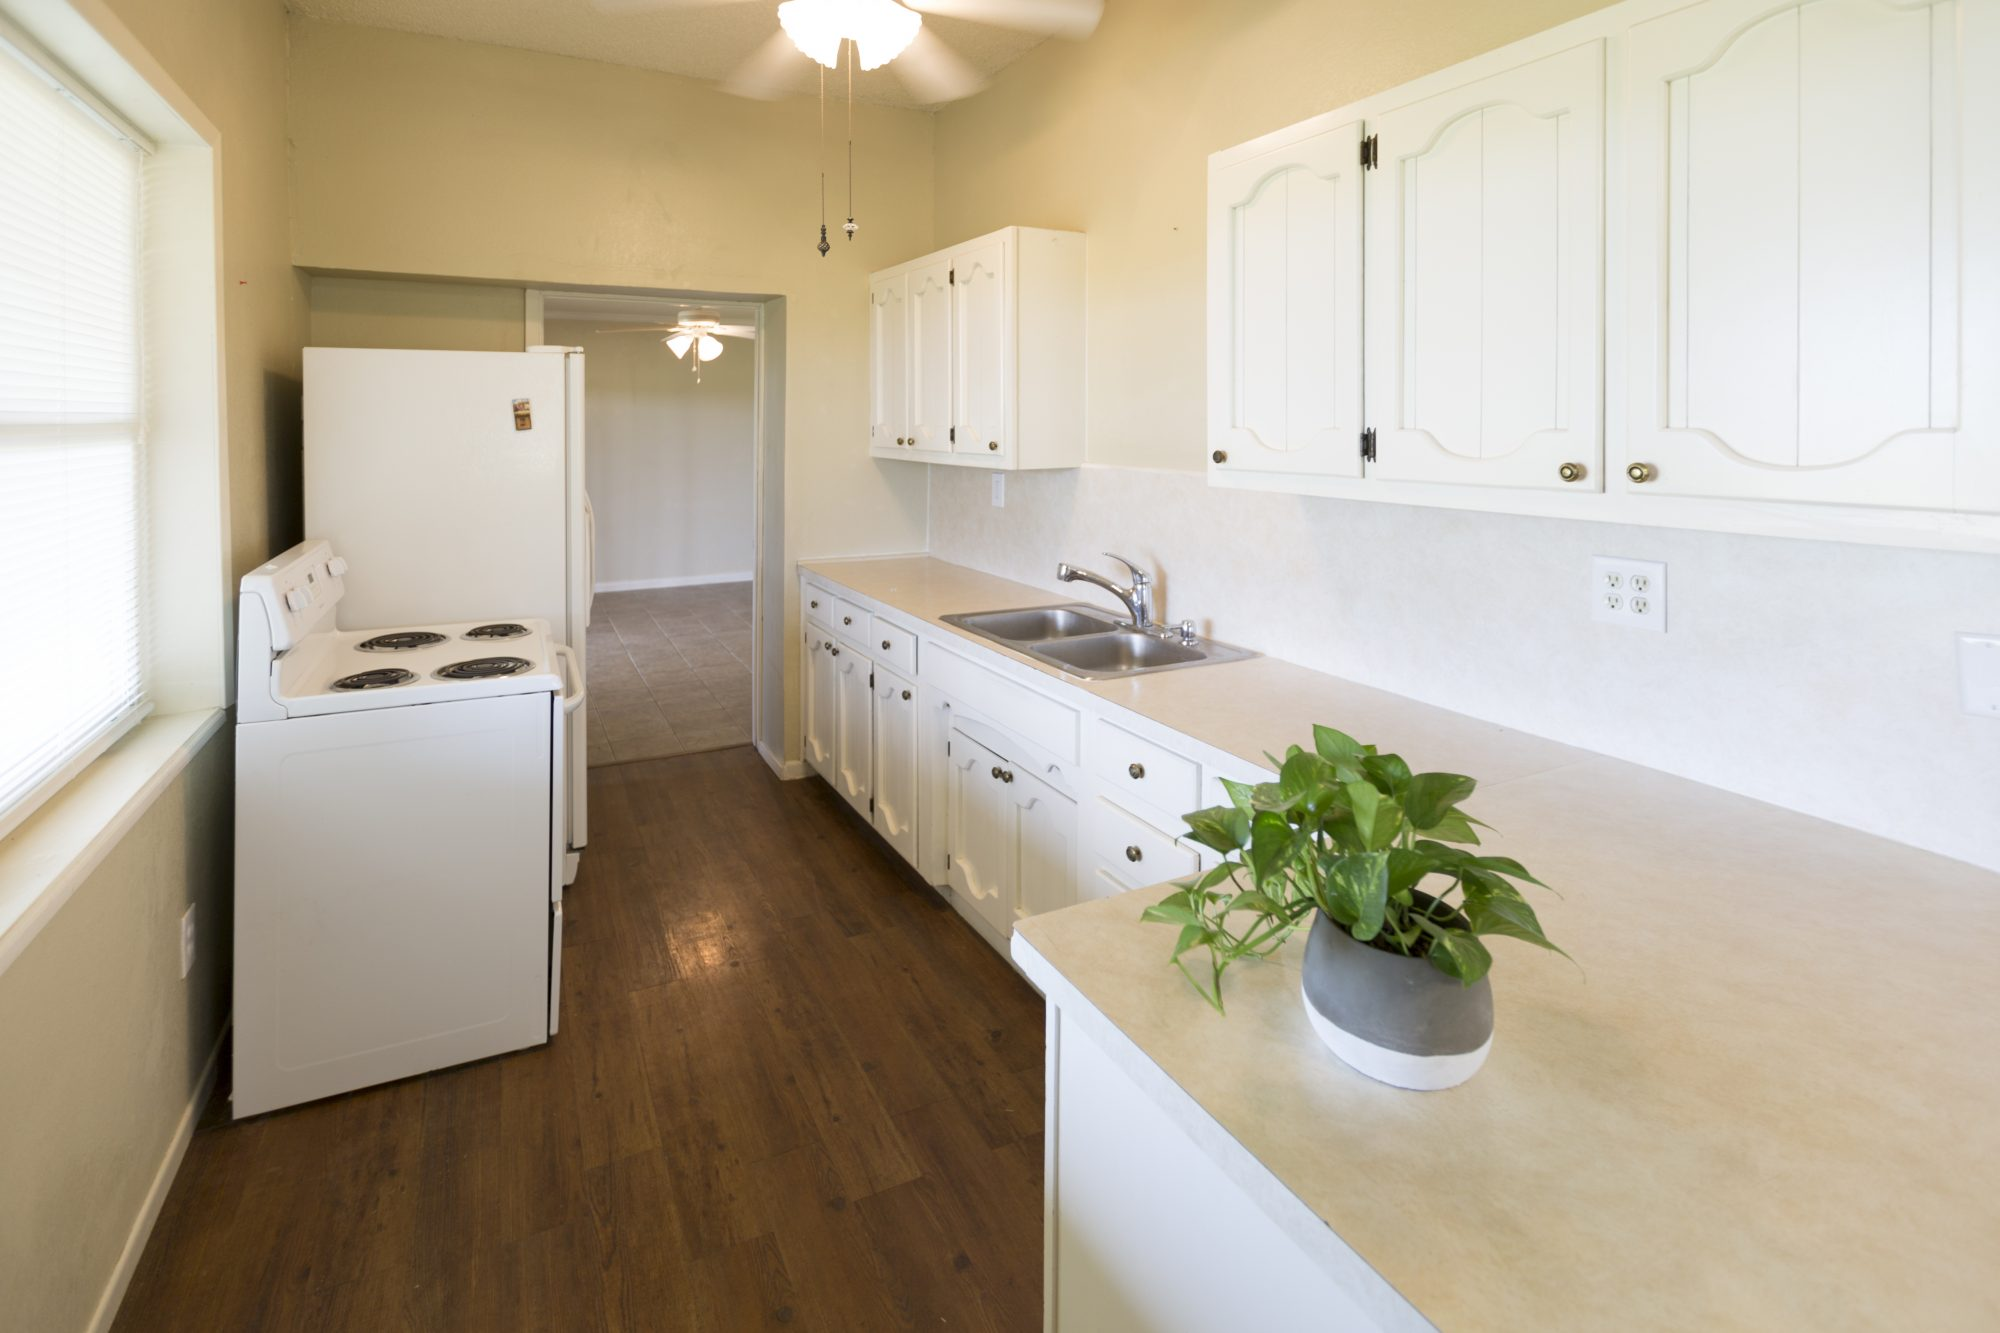 The kitchen of the Brooks home before renovations, as seen on Fixer Upper.